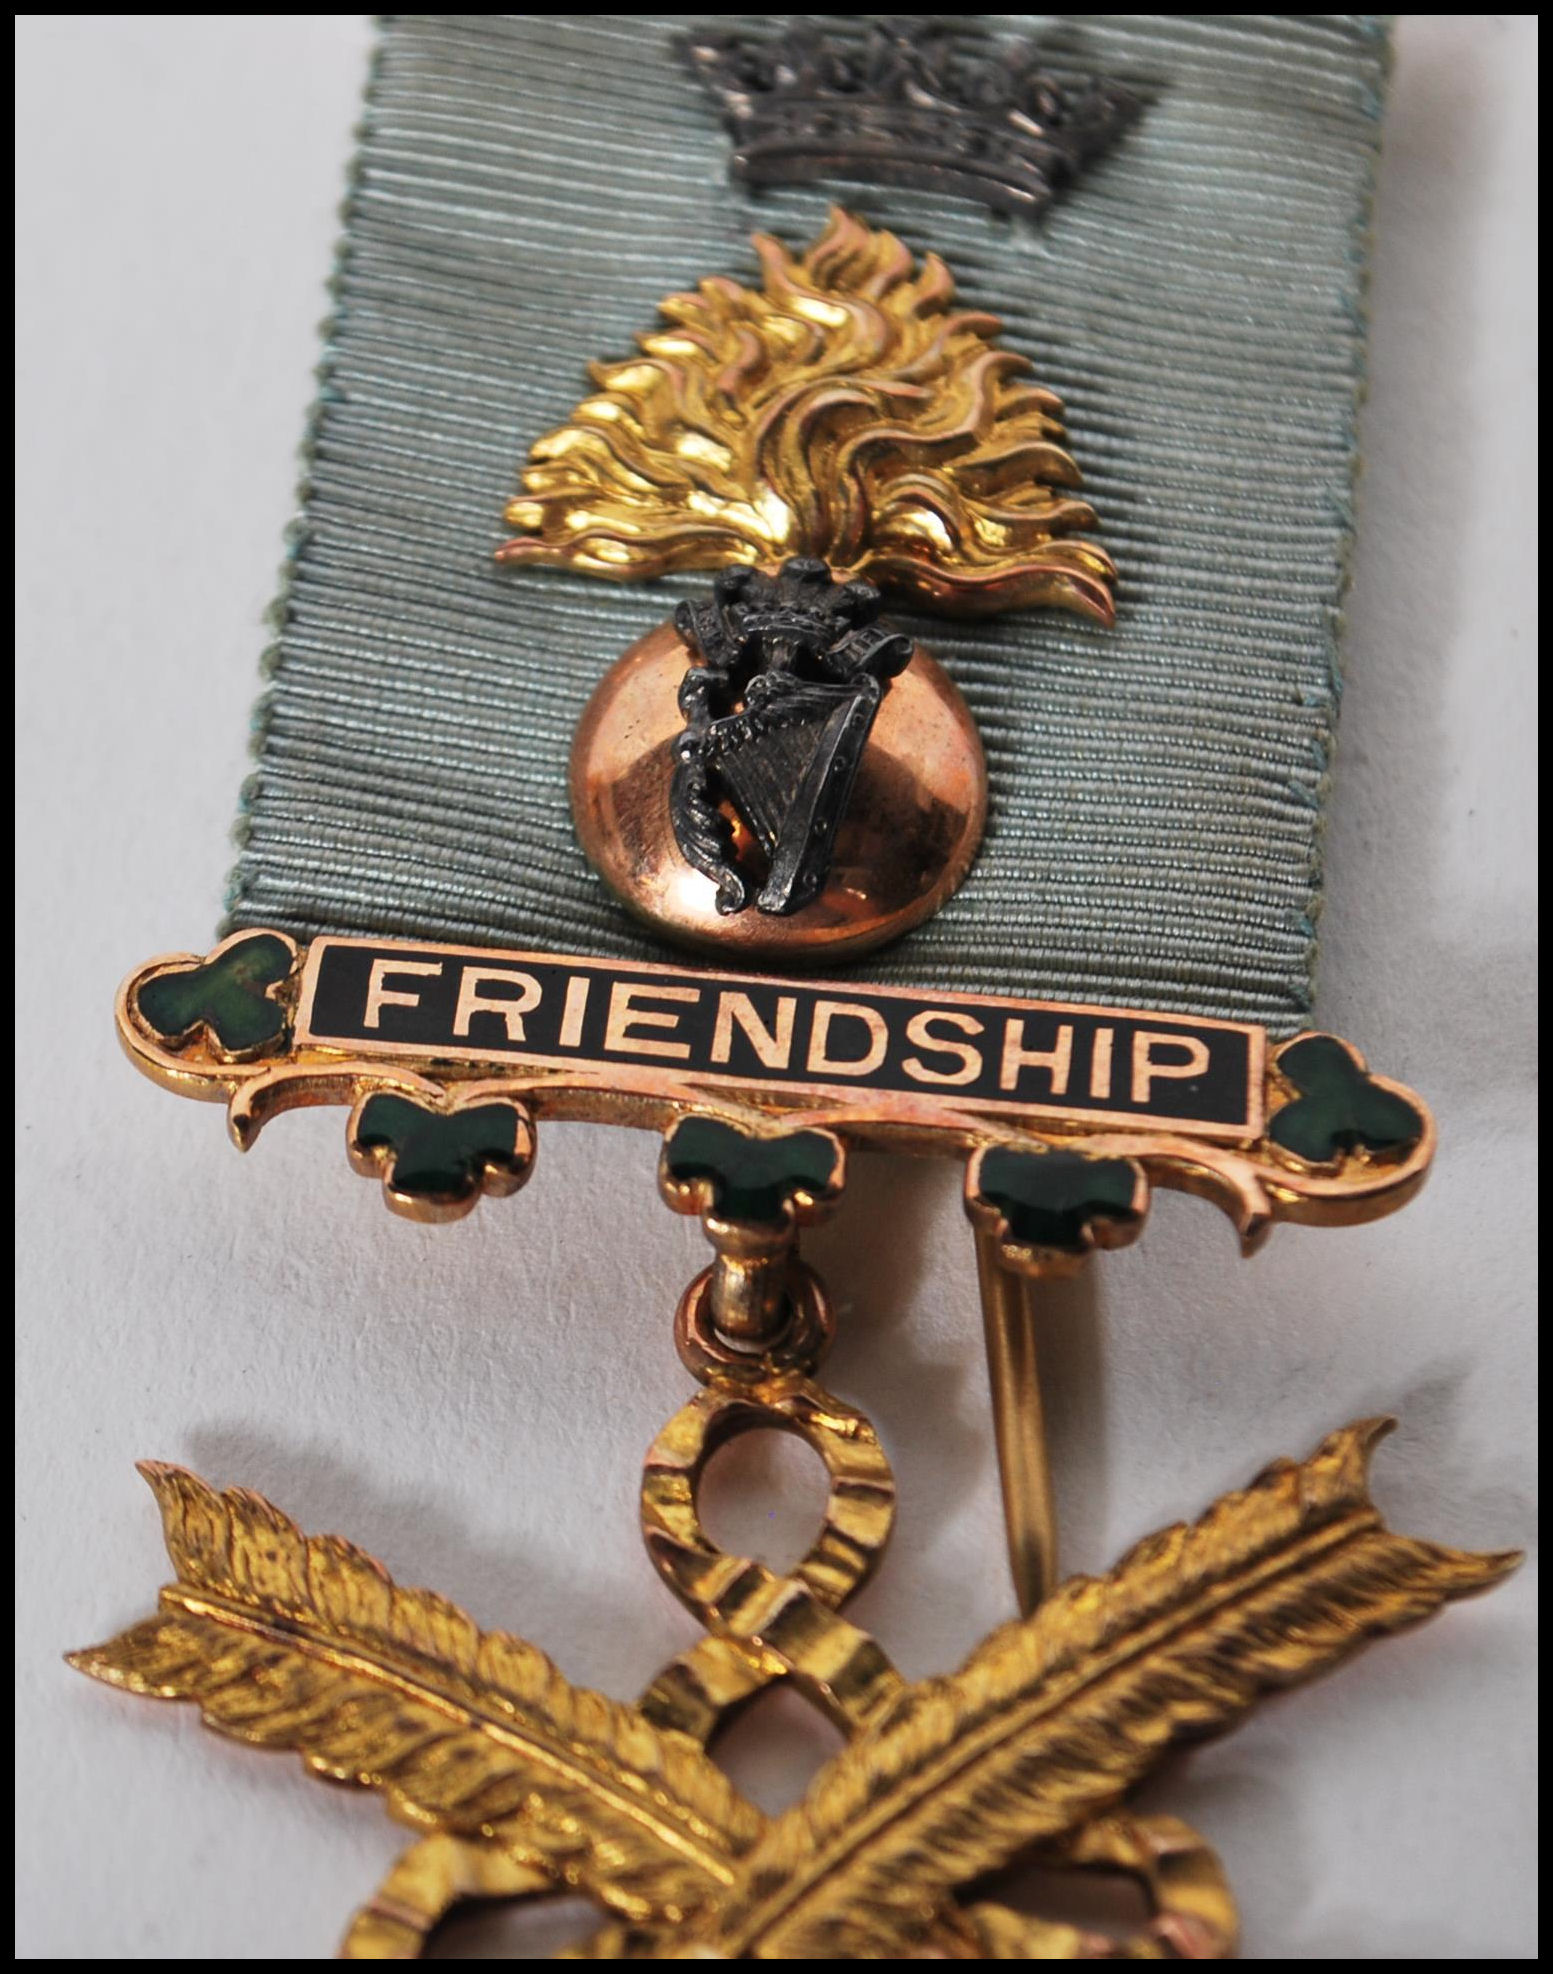 Lot 851 - A hallmarked 9ct gold Masonic medal of Social Friendship, stamped to verso Presented to Bro: J.H.